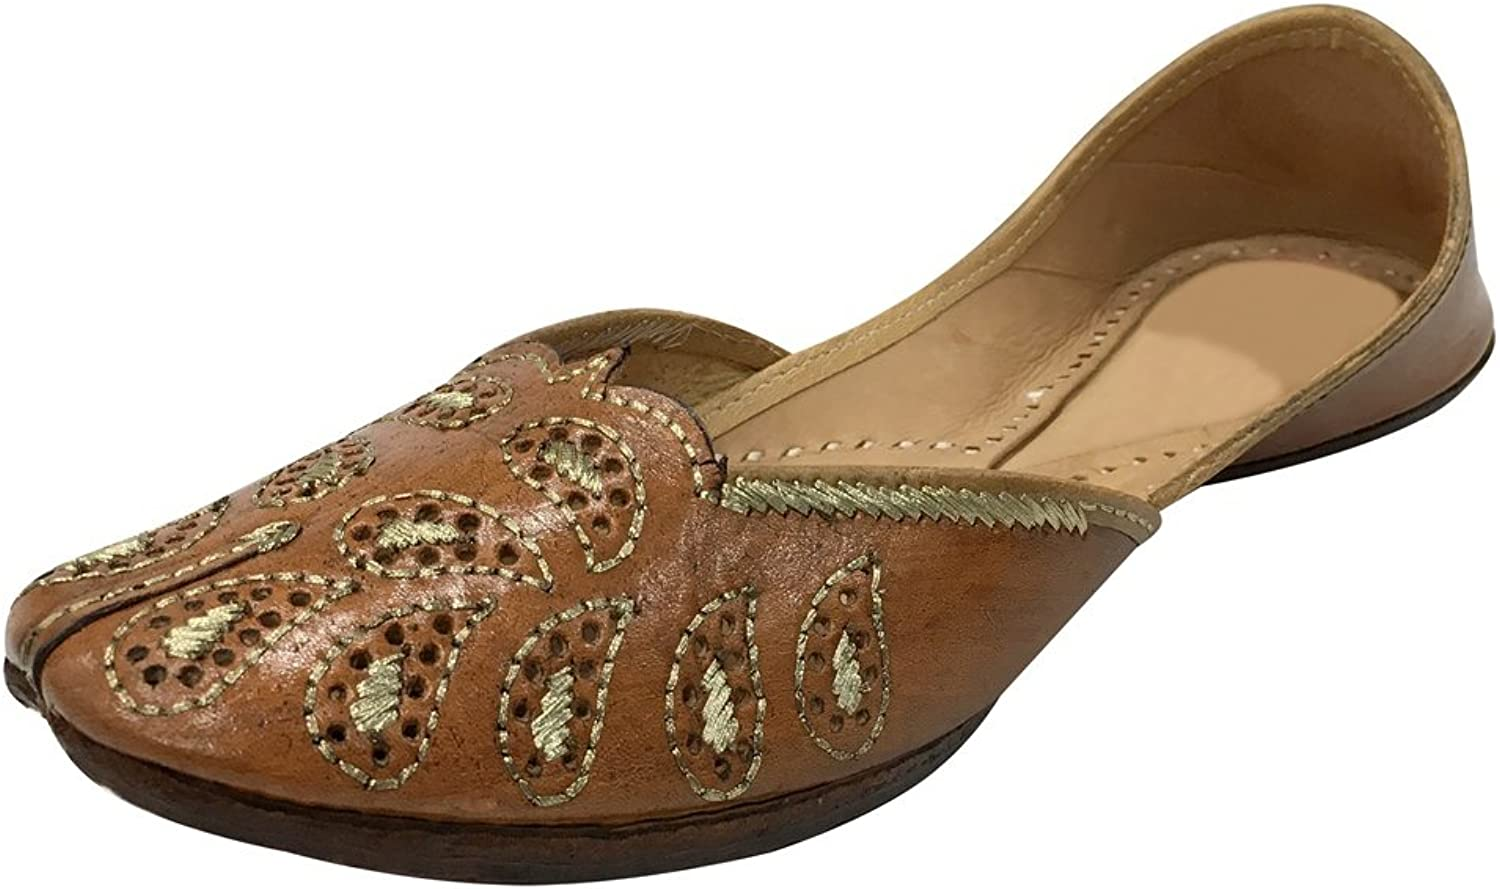 Step n Style Indian Khussa shoes Slippers Sandals Punjabi Juti Mojri Ballerina shoes